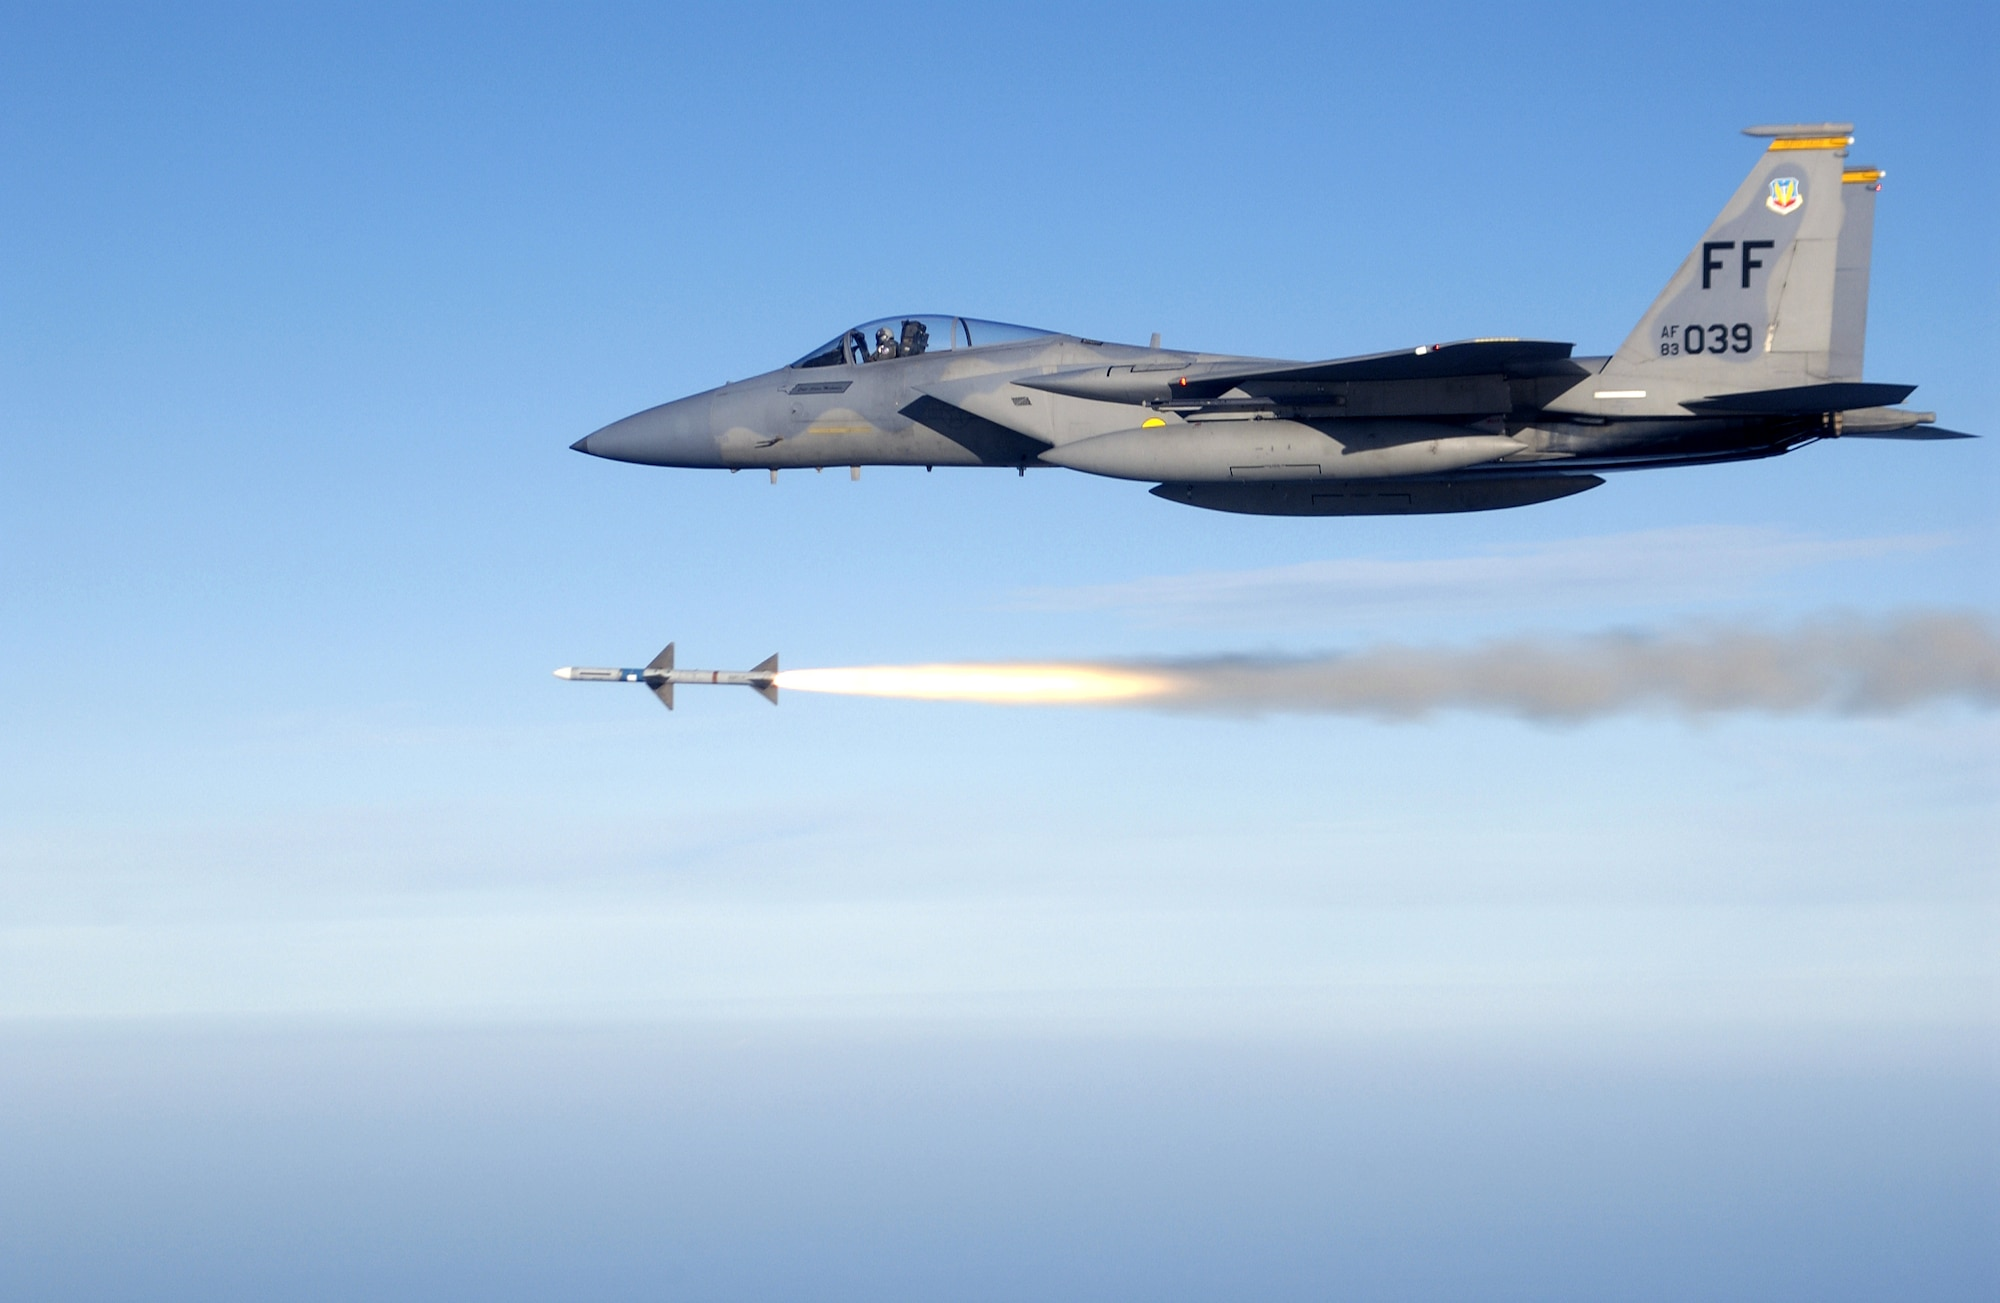 OVER THE GULF OF MEXICO -- First Lt. Charles Schuck fires an AIM-7 Sparrow medium range air-to-air missile from an F-15 Eagle here while supporting a Combat Archer air-to-air weapons system evaluation program mission.  He and other Airmen of the 71st Fighter Squadron deployed from Langley Air Force Base, Va., to Tyndall AFB, Fla., to support the program.  (U.S. Air Force photo by Master Sgt. Michael Ammons)